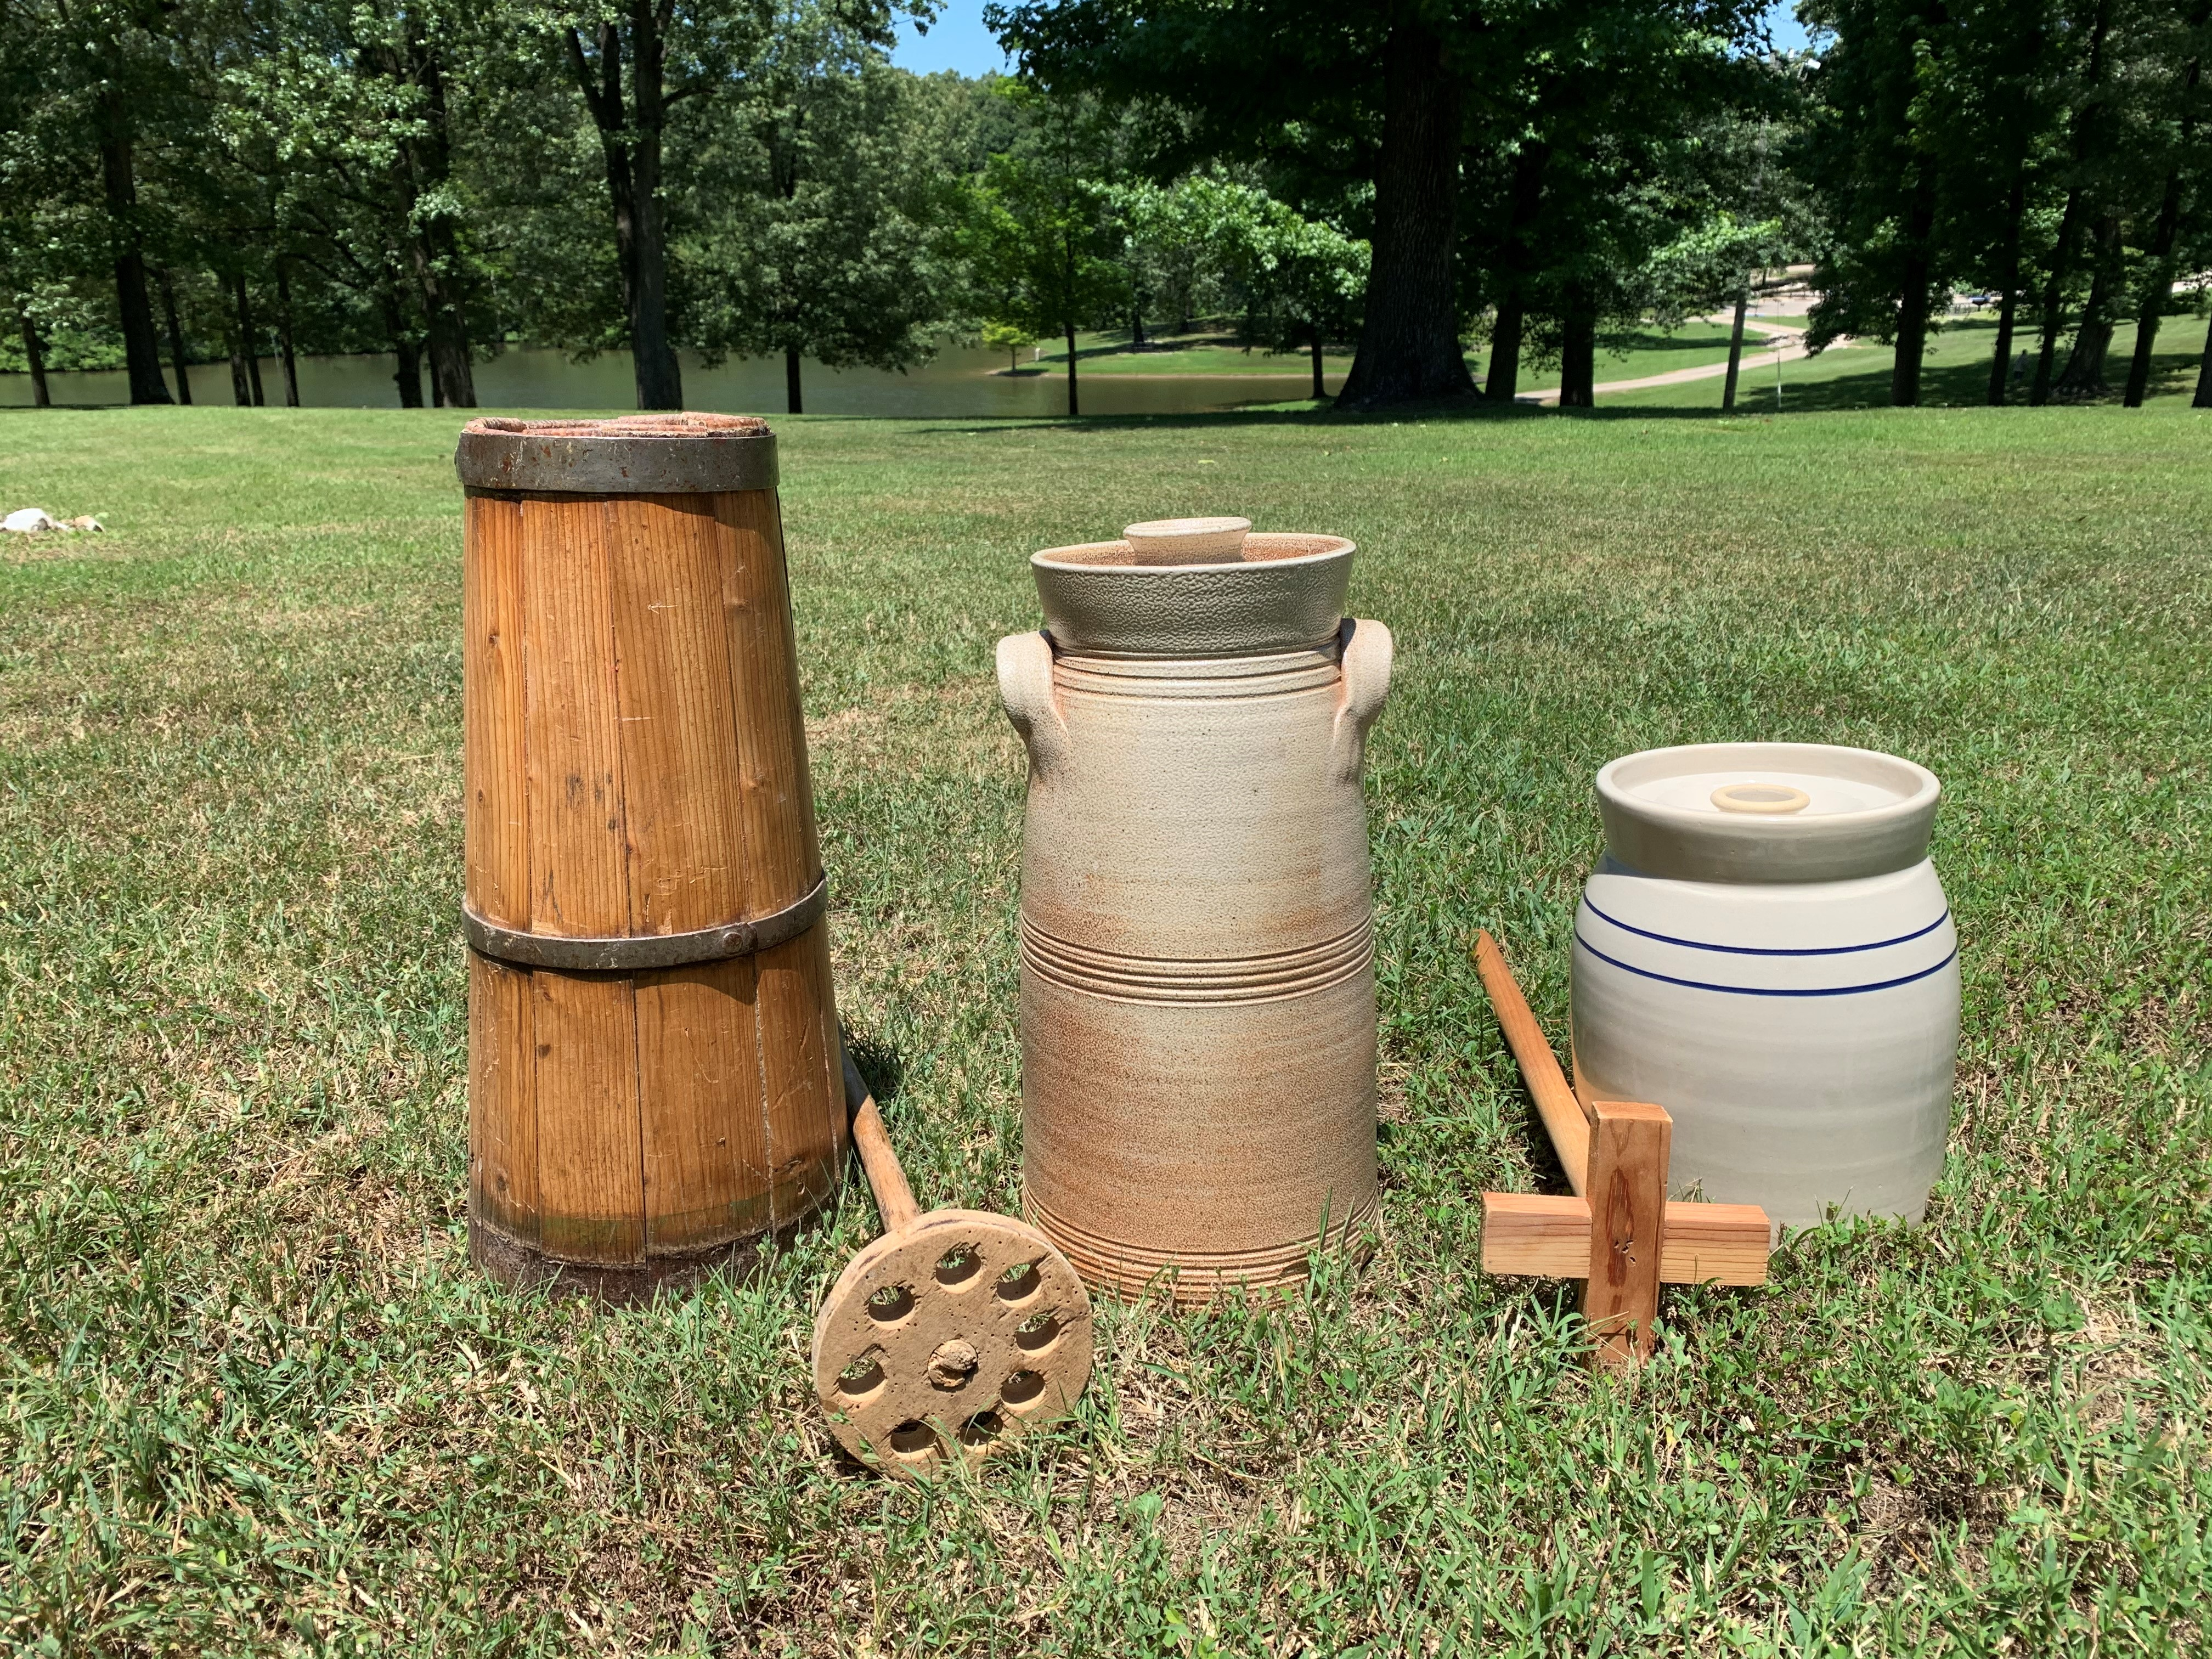 Three butter churns are lined up outside from tallest to shortest. The first churn is wooden and the other two are clay. There are two dashers (wooden stick used to churn the butter) in between the three churns. One dasher has a cross pattern and the other is a circle with holes in it.)